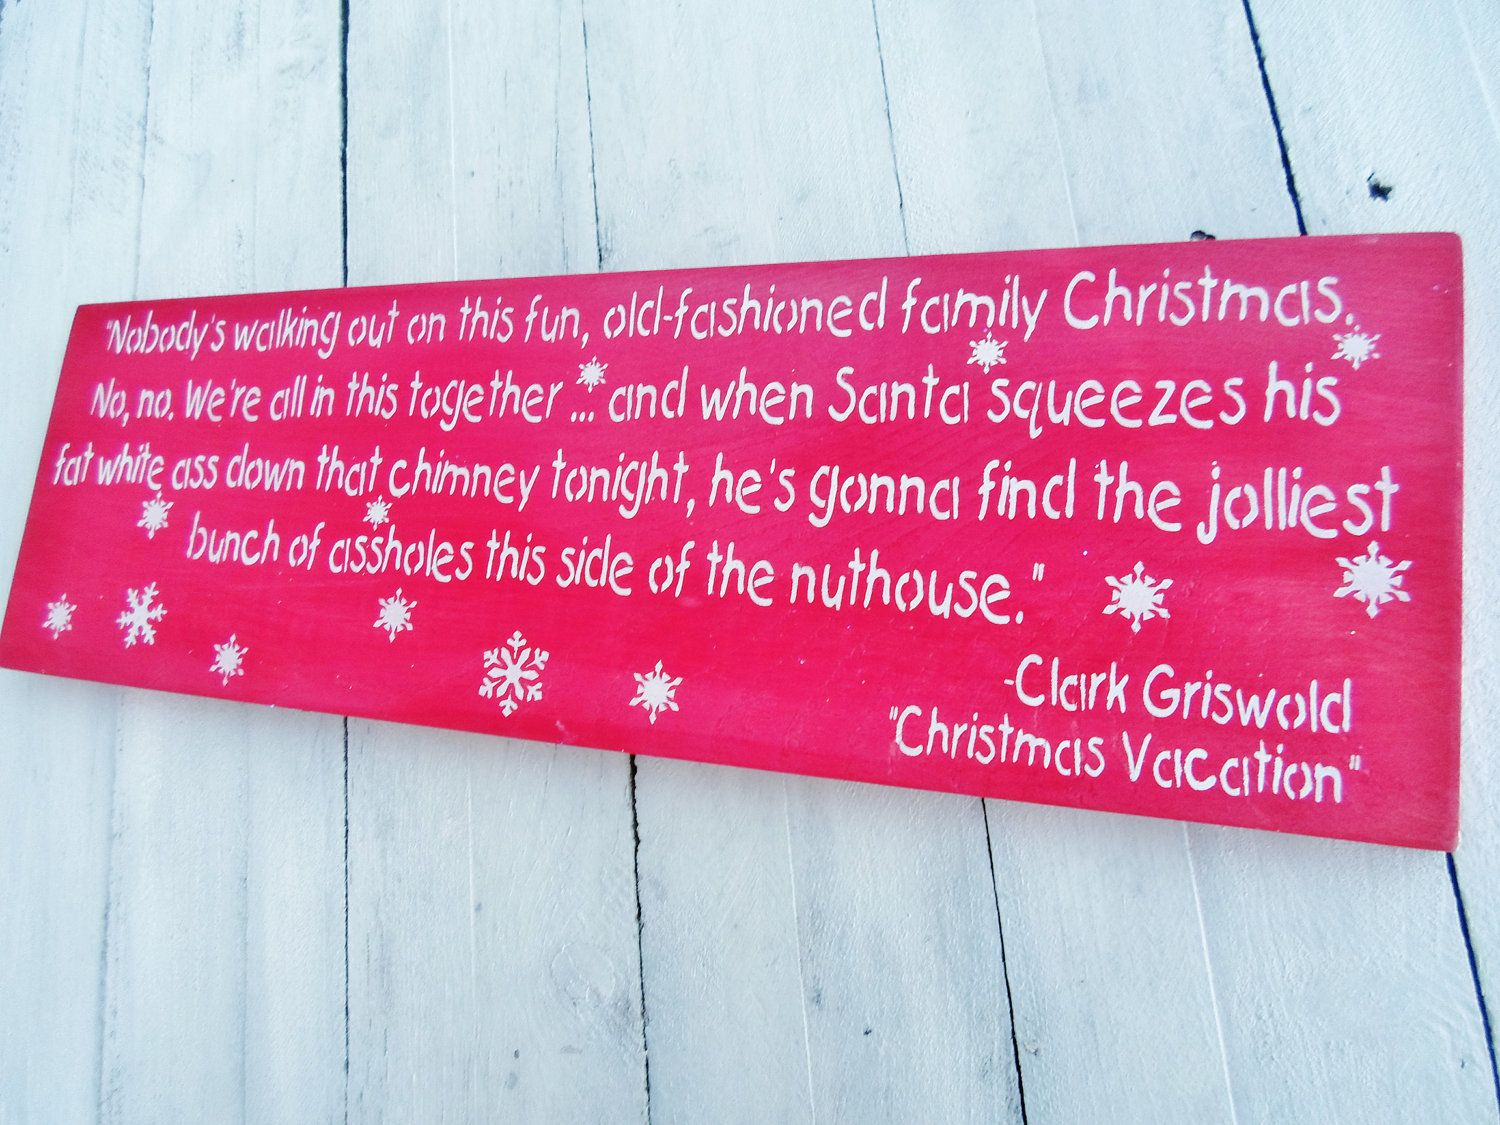 Funny Old Fashioned Quotes: CHRISTMAS VACATION Clark Griswold Christmas Vacation Funny